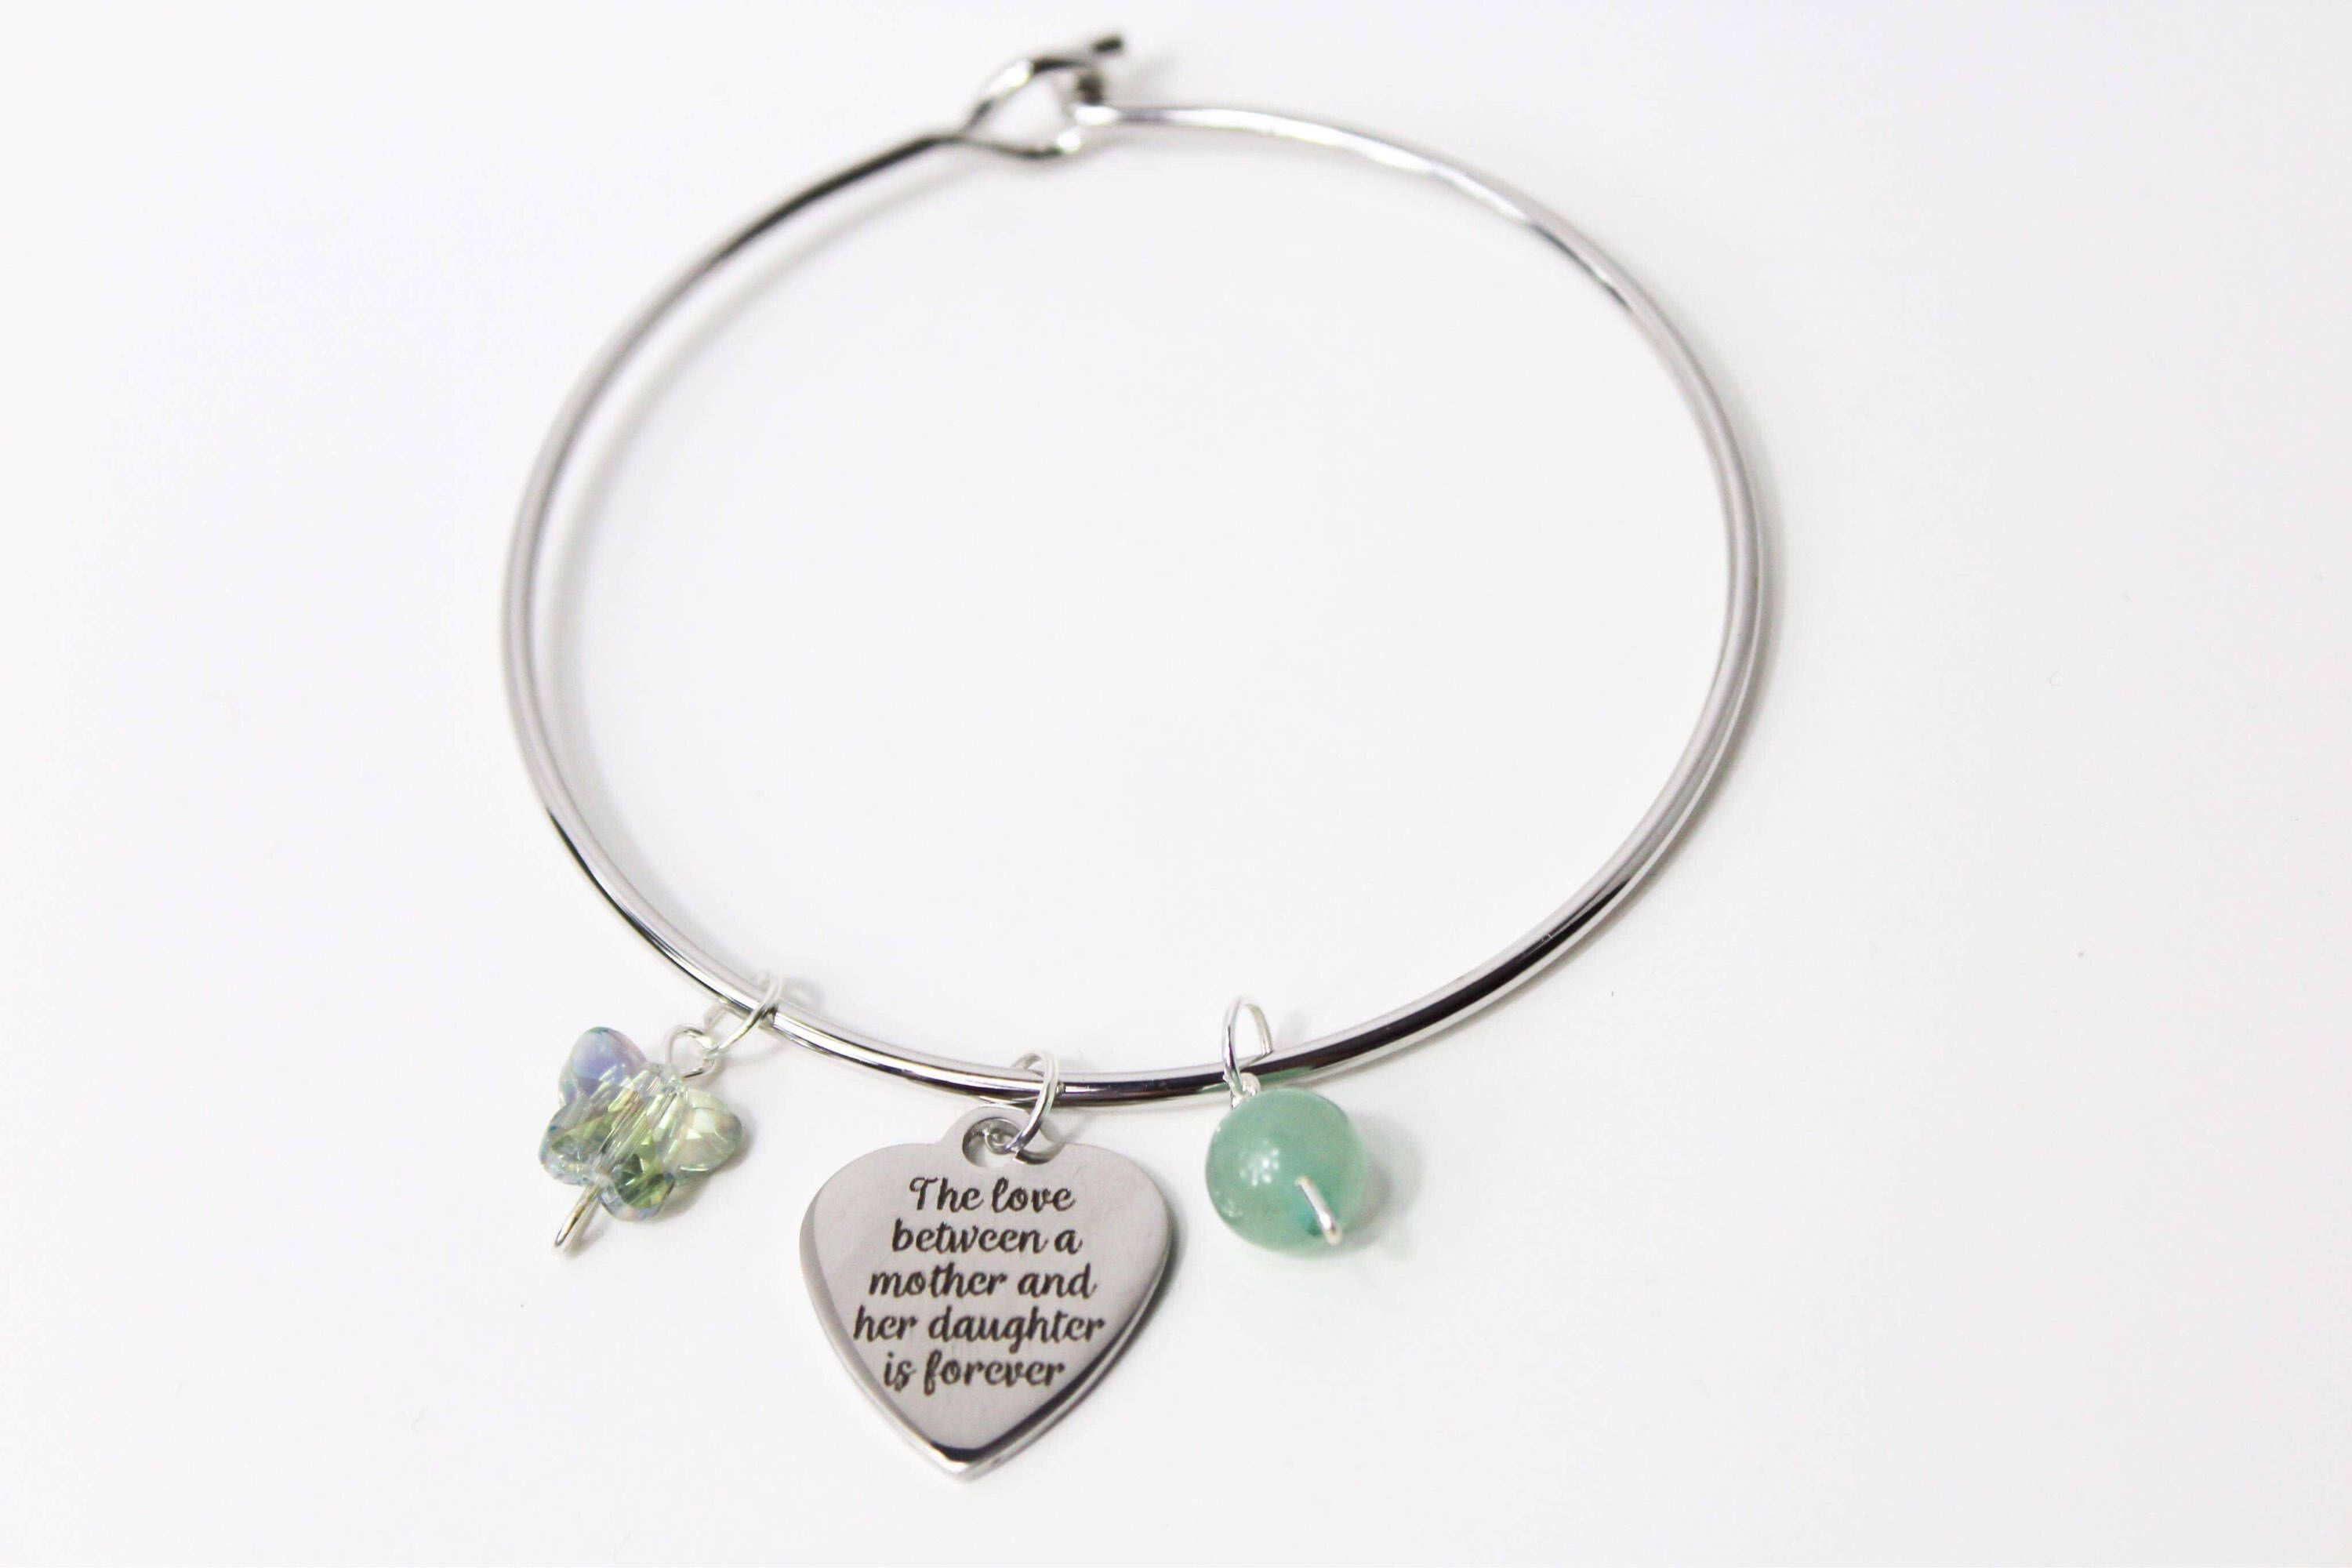 mothers multistone p gift her personalized birthstone for day silver bracelets il bracelet custom fullxfull